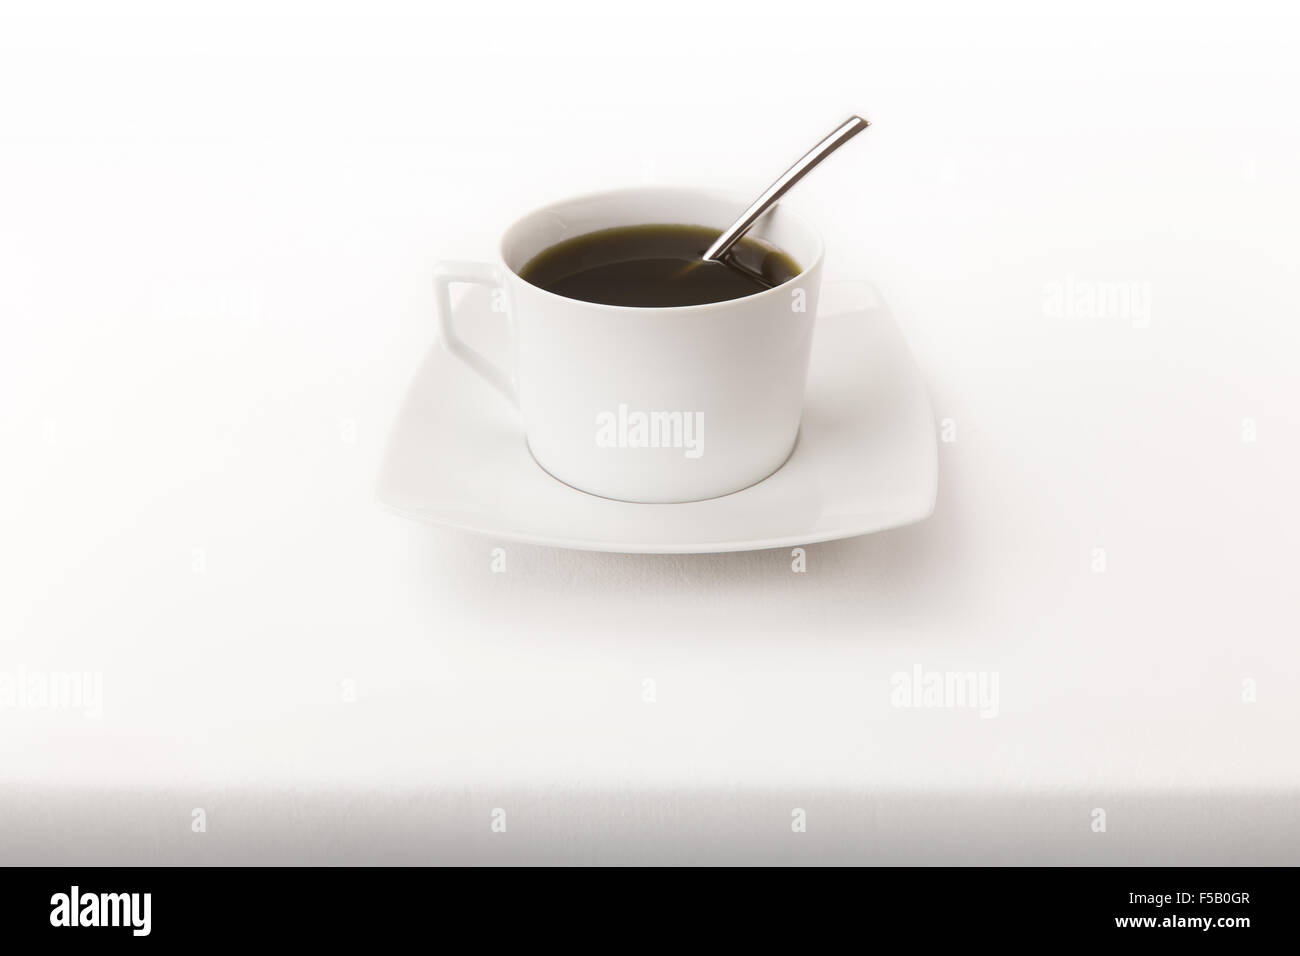 A modern cup of tea with a spoon on a white tablecloth with real shadow bottom - Stock Image